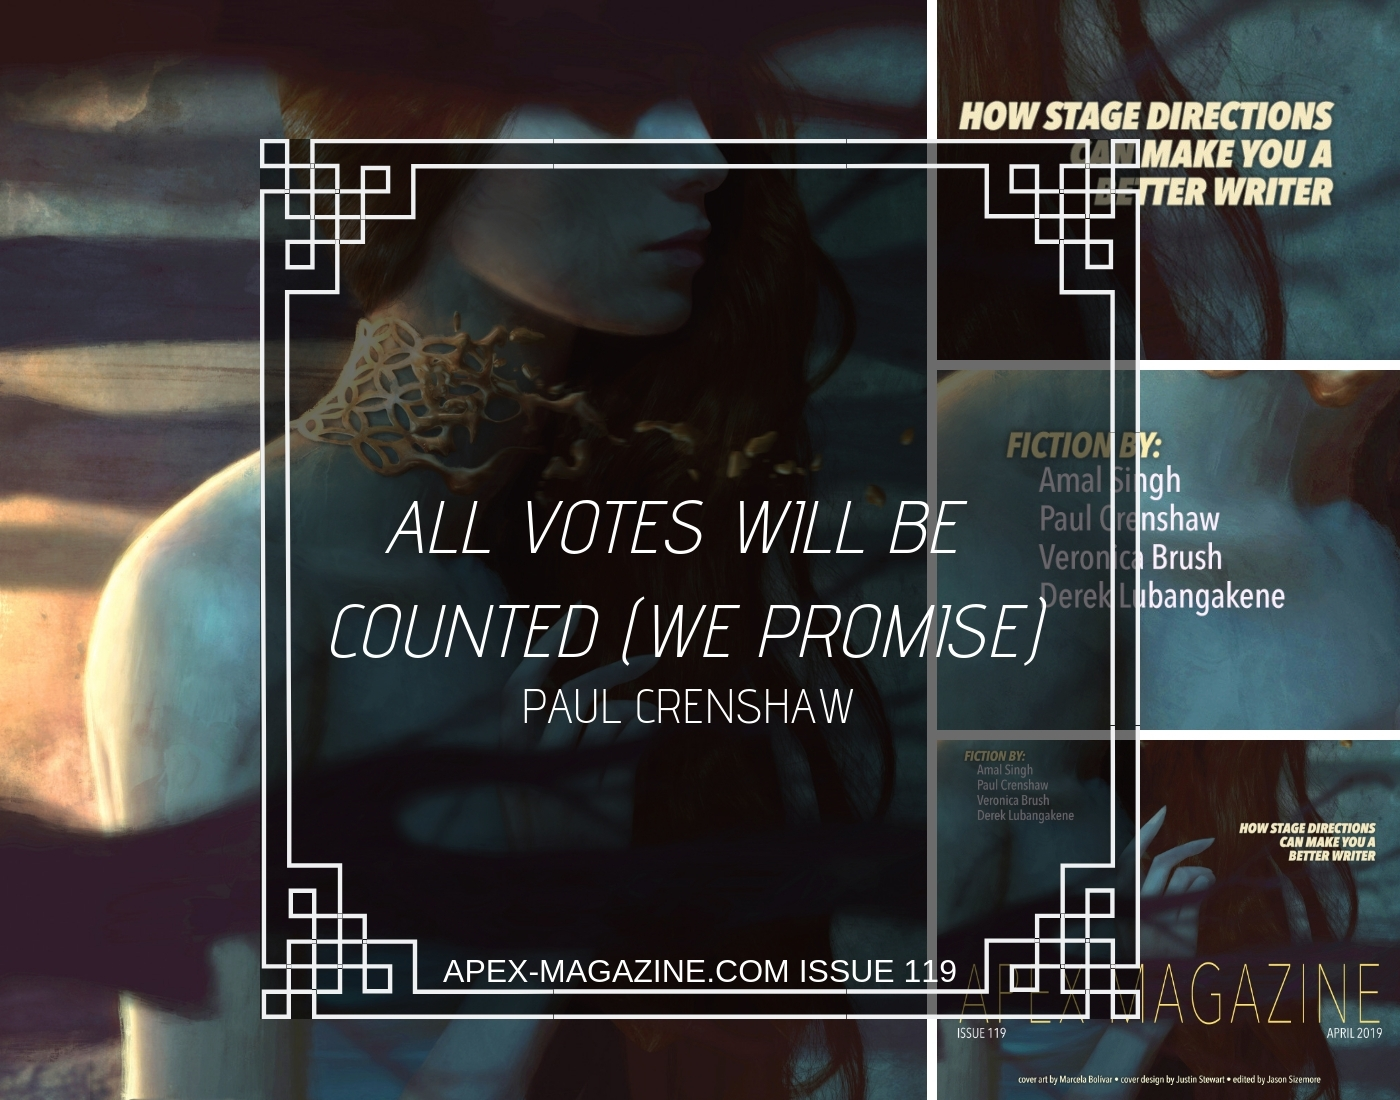 All Votes Will Be Counted (We Promise)